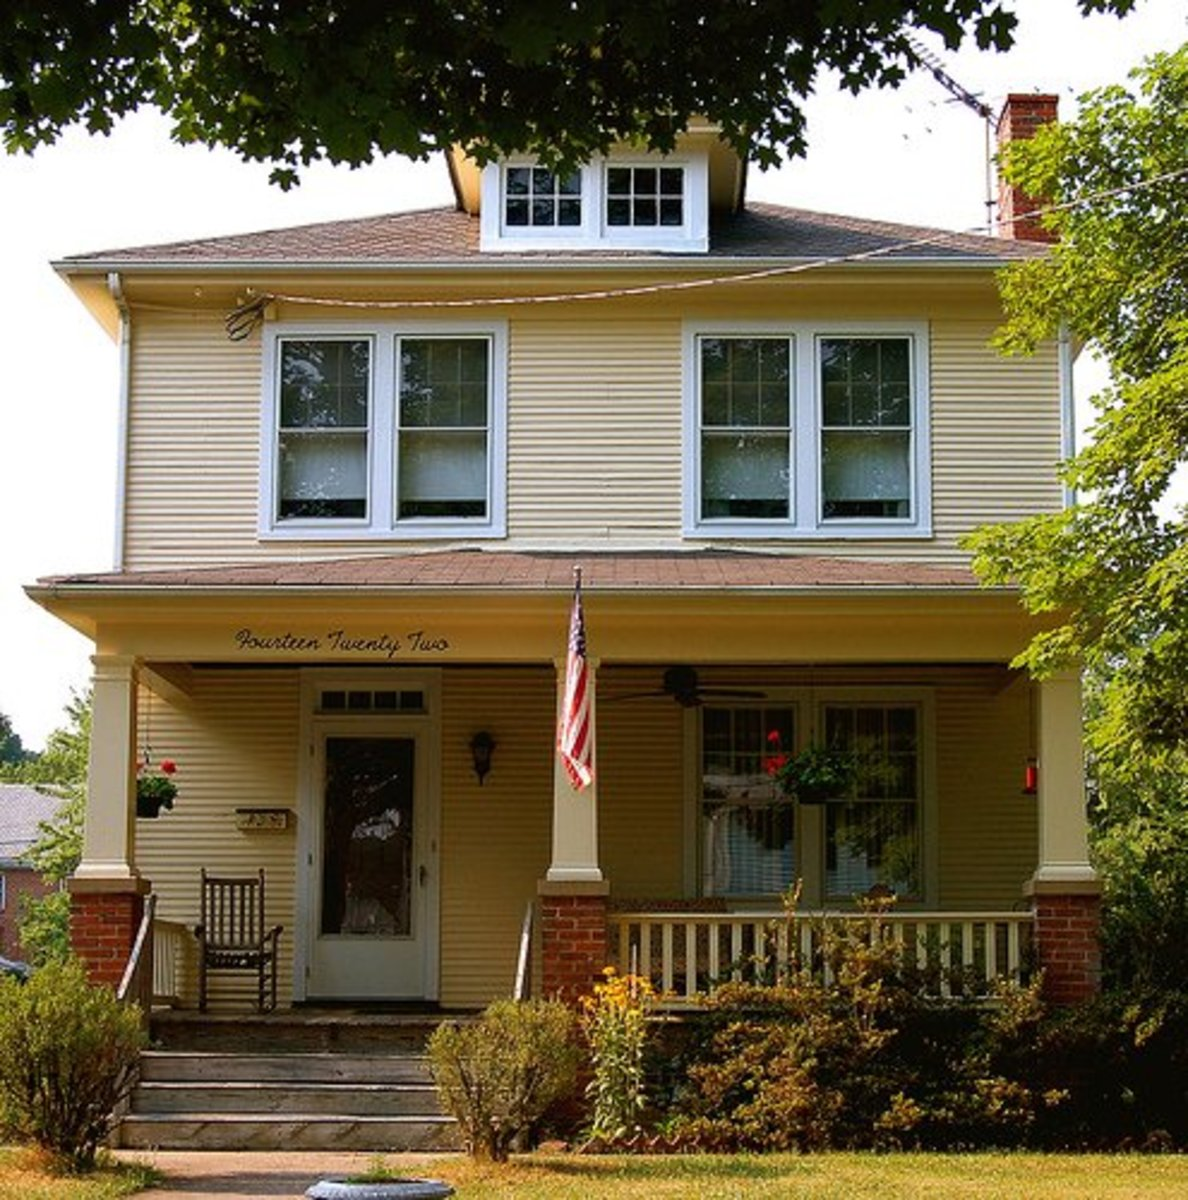 What Is A Bungalow Style Home: Characteristics Of Bungalow Style Houses